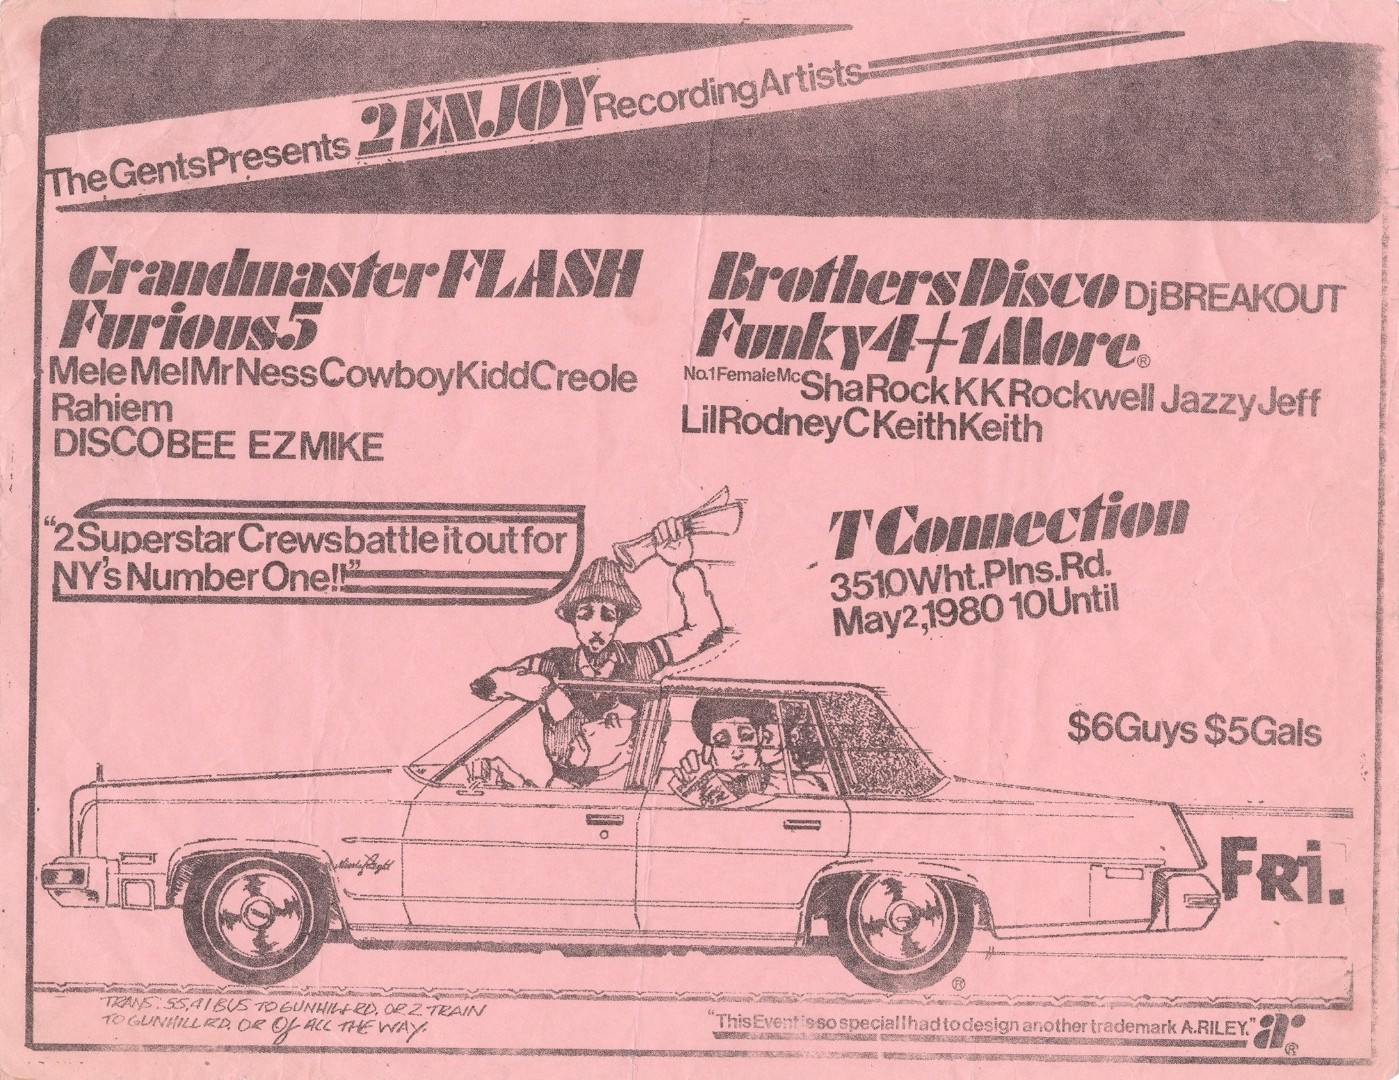 these handmade flyers from the earliest days of hip hop advertise